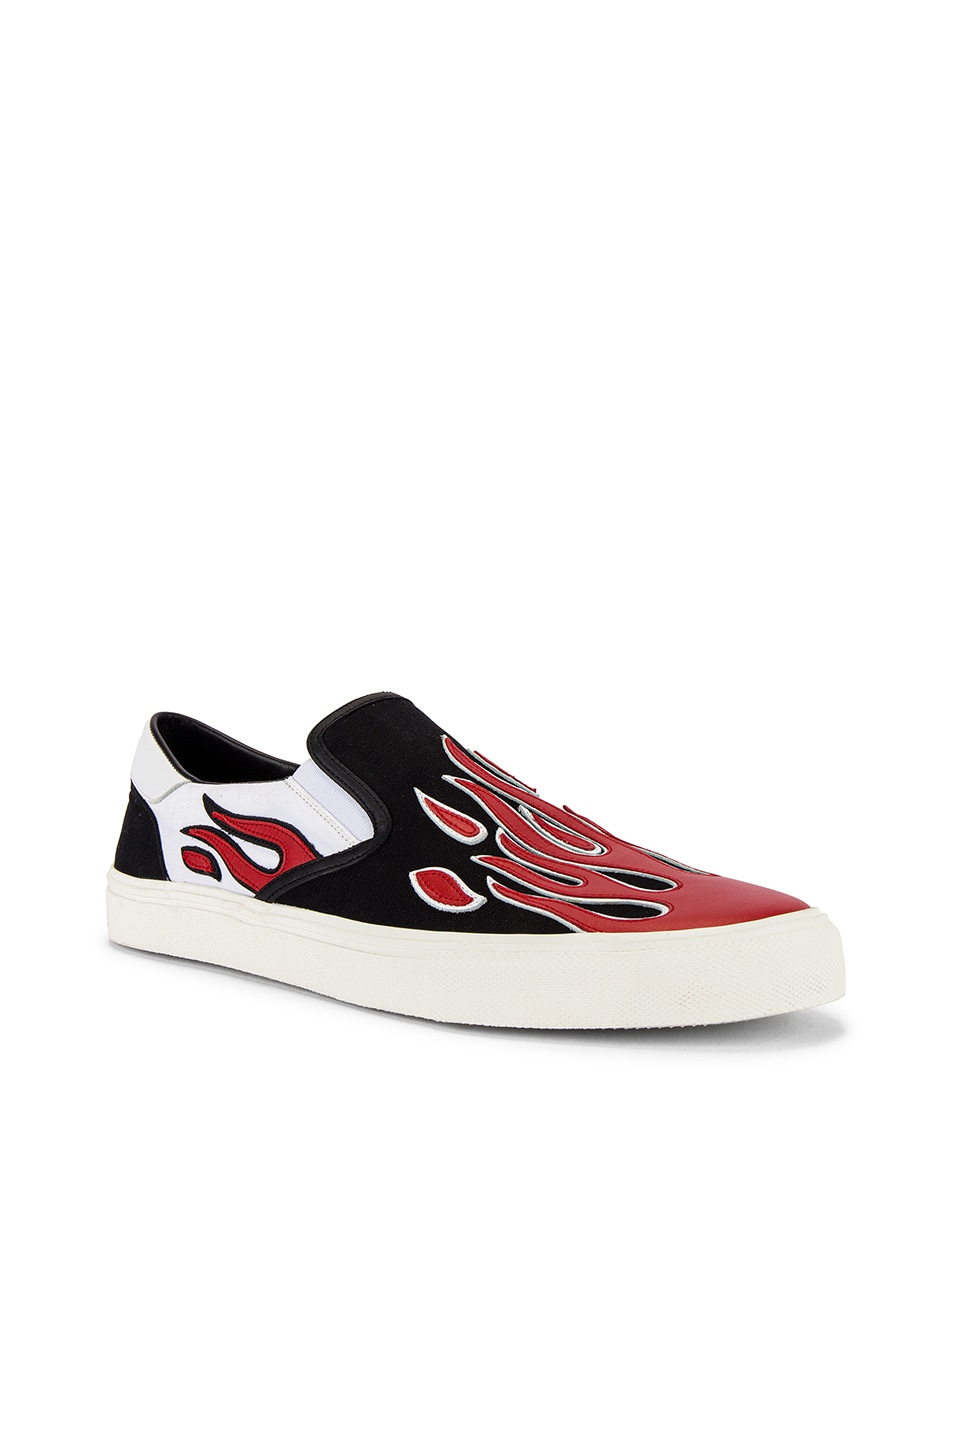 Image 1 of Amiri Flame Slip On in Black & White & Red